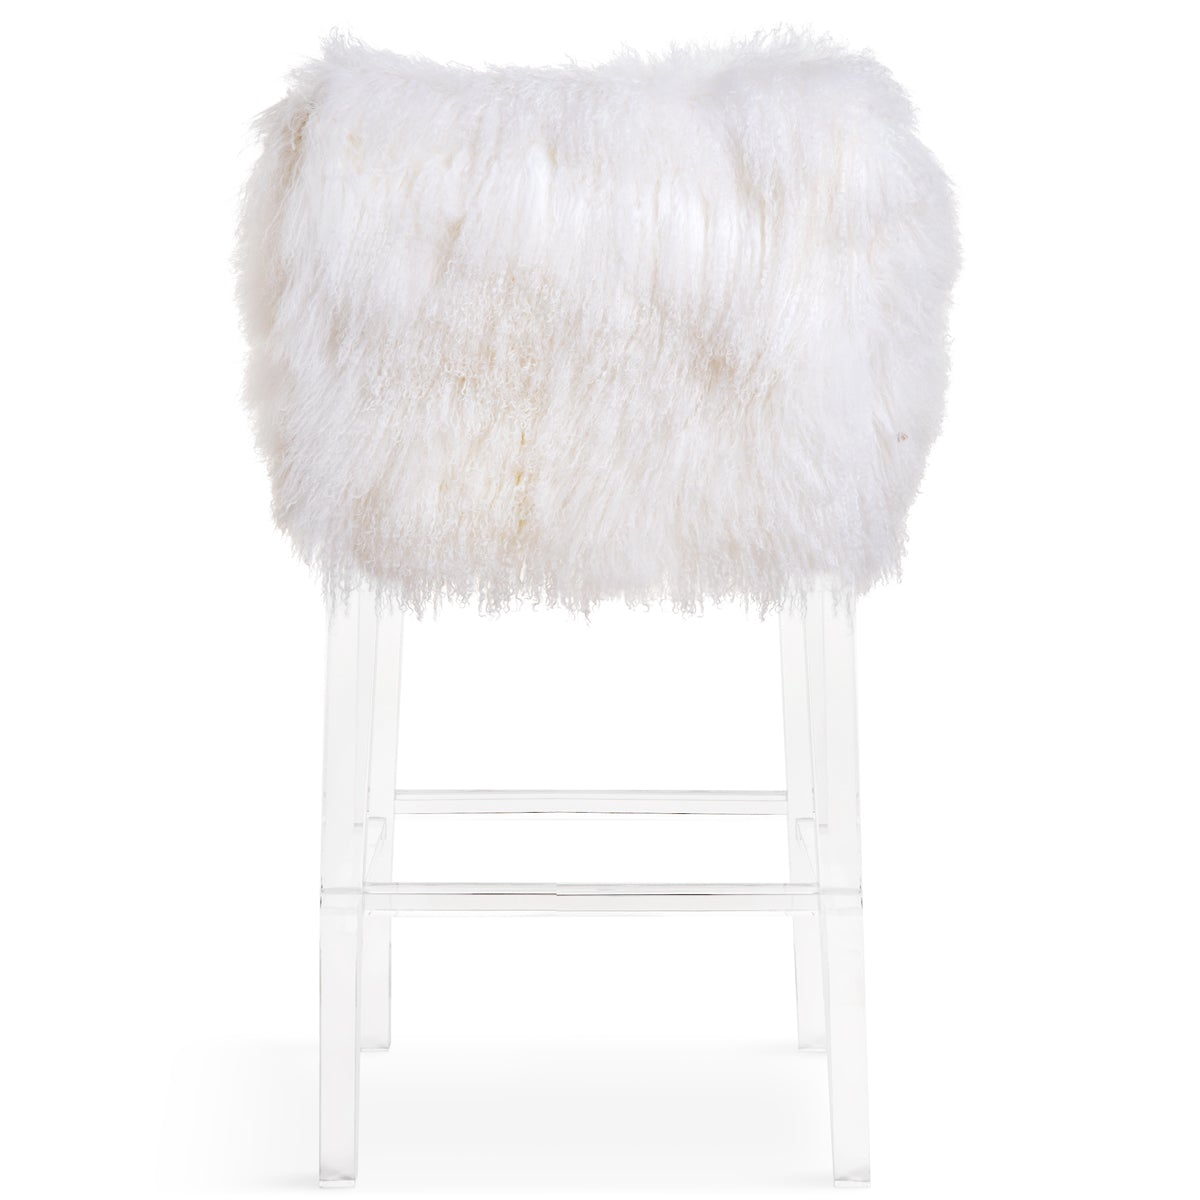 Enjoyable Beverly Hills Bar And Counter Stool In Mongolian Fur Modshop Pabps2019 Chair Design Images Pabps2019Com